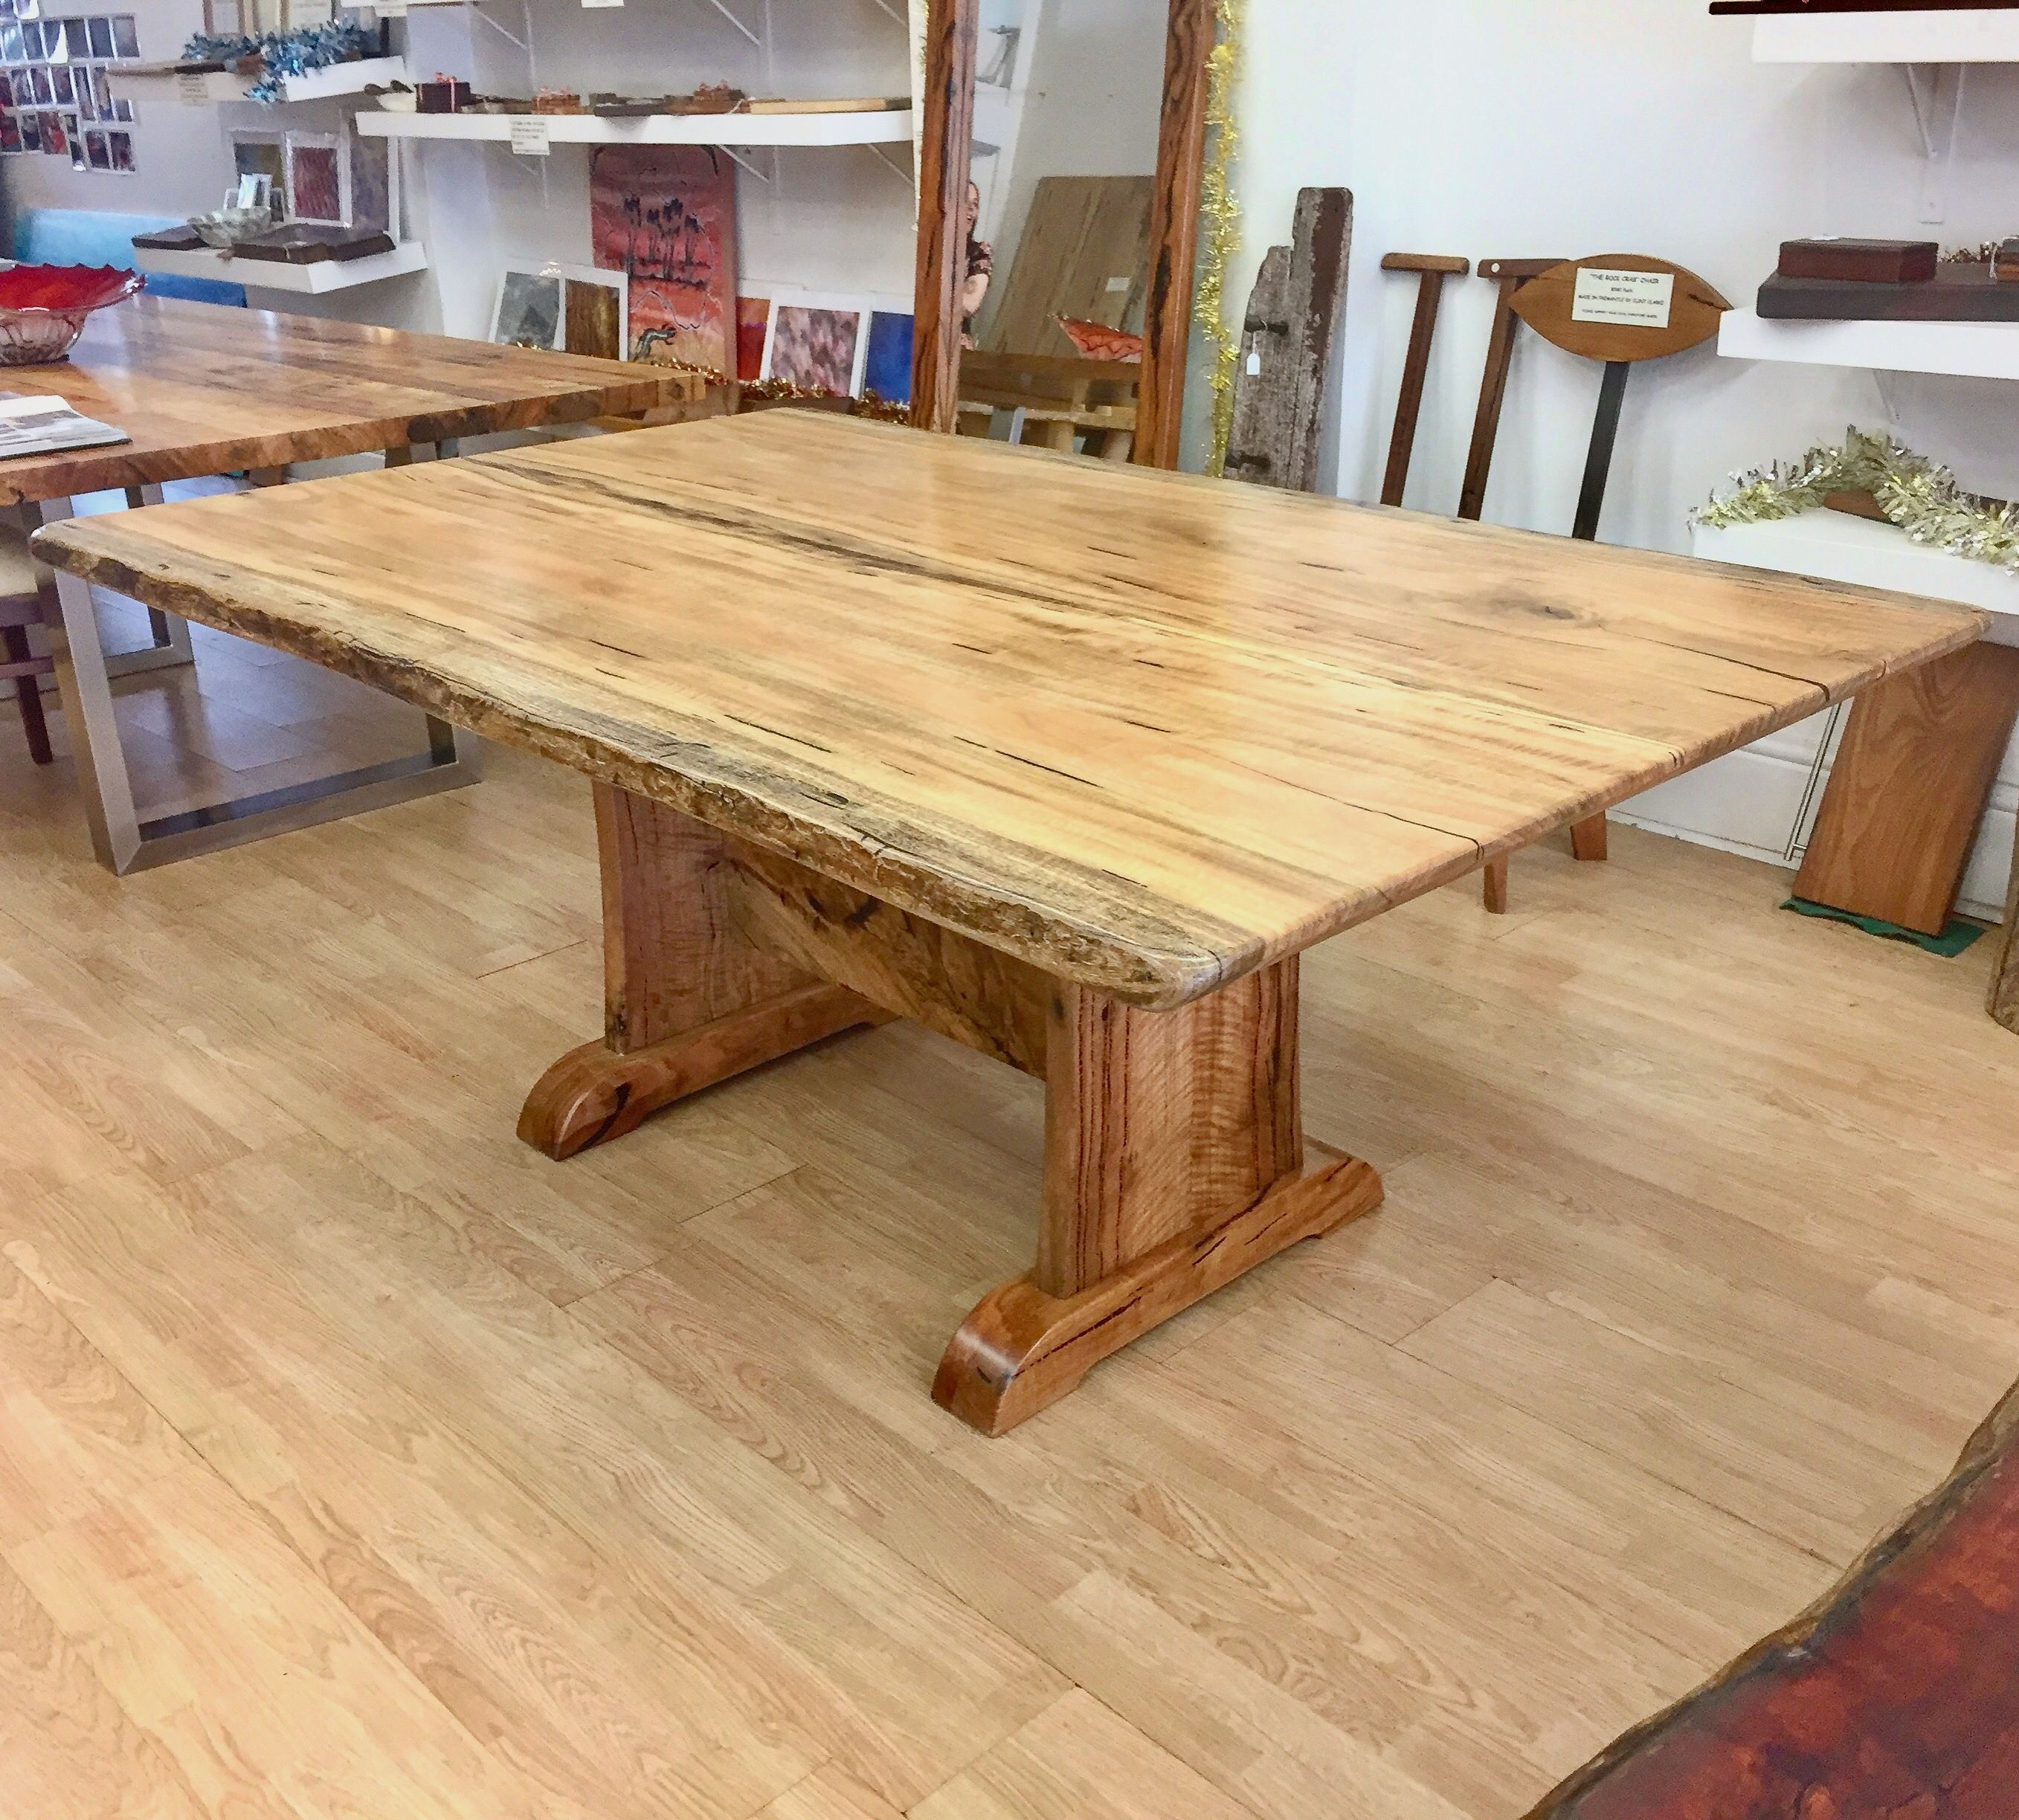 Pin by America Ortiz on DIY Dining table, Dining room